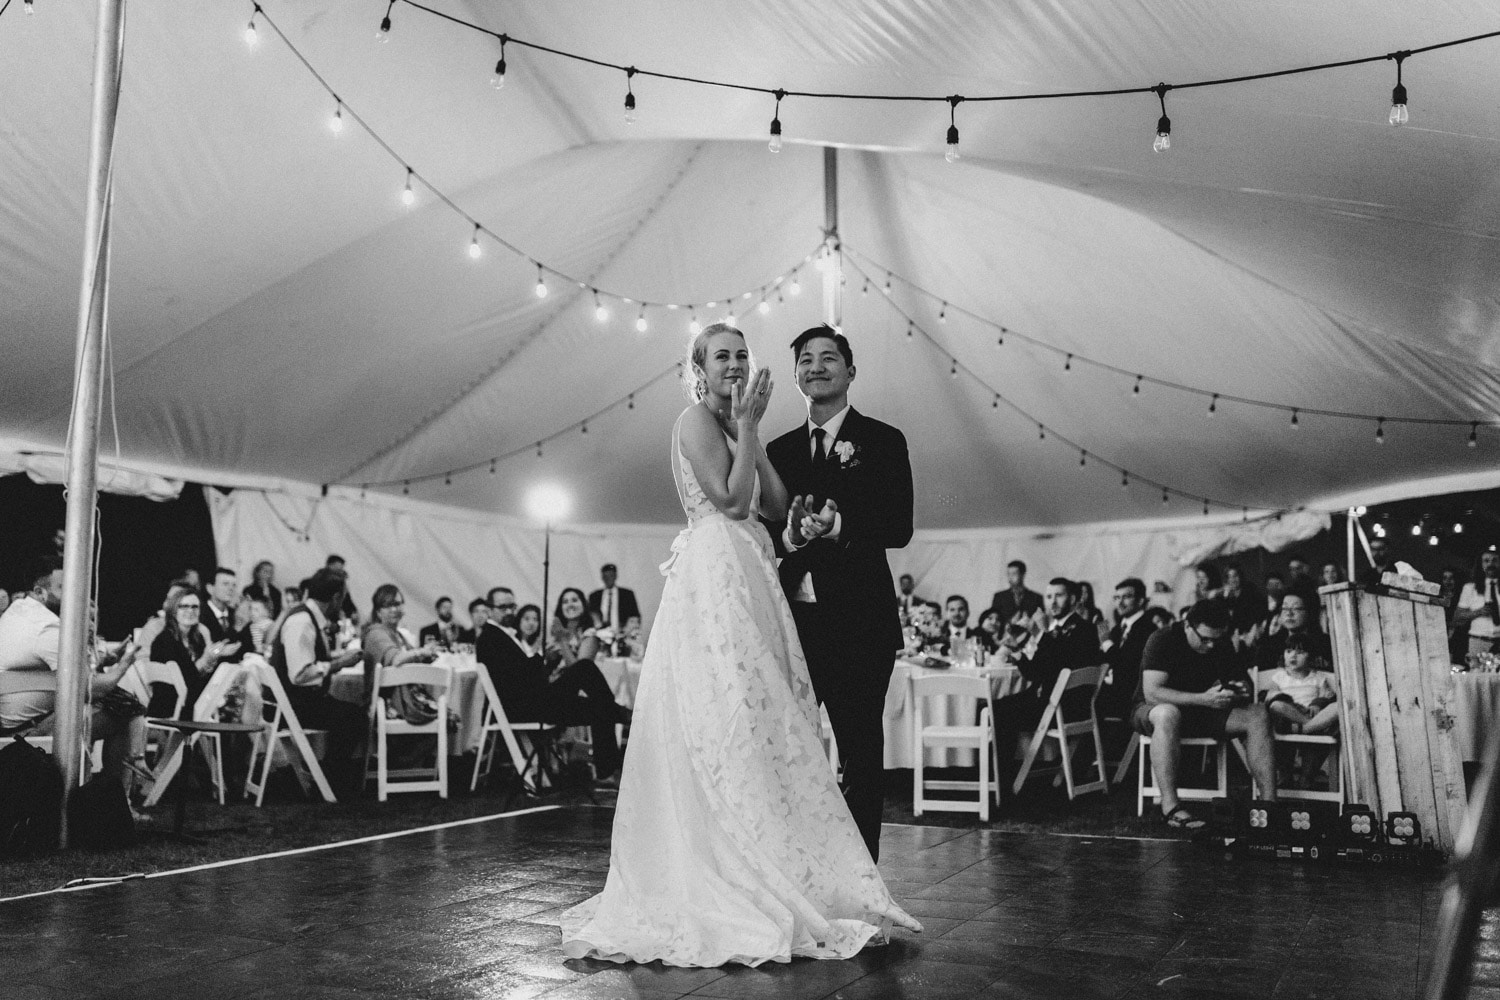 bride and groom dance together under tent - ottawa wedding photographer